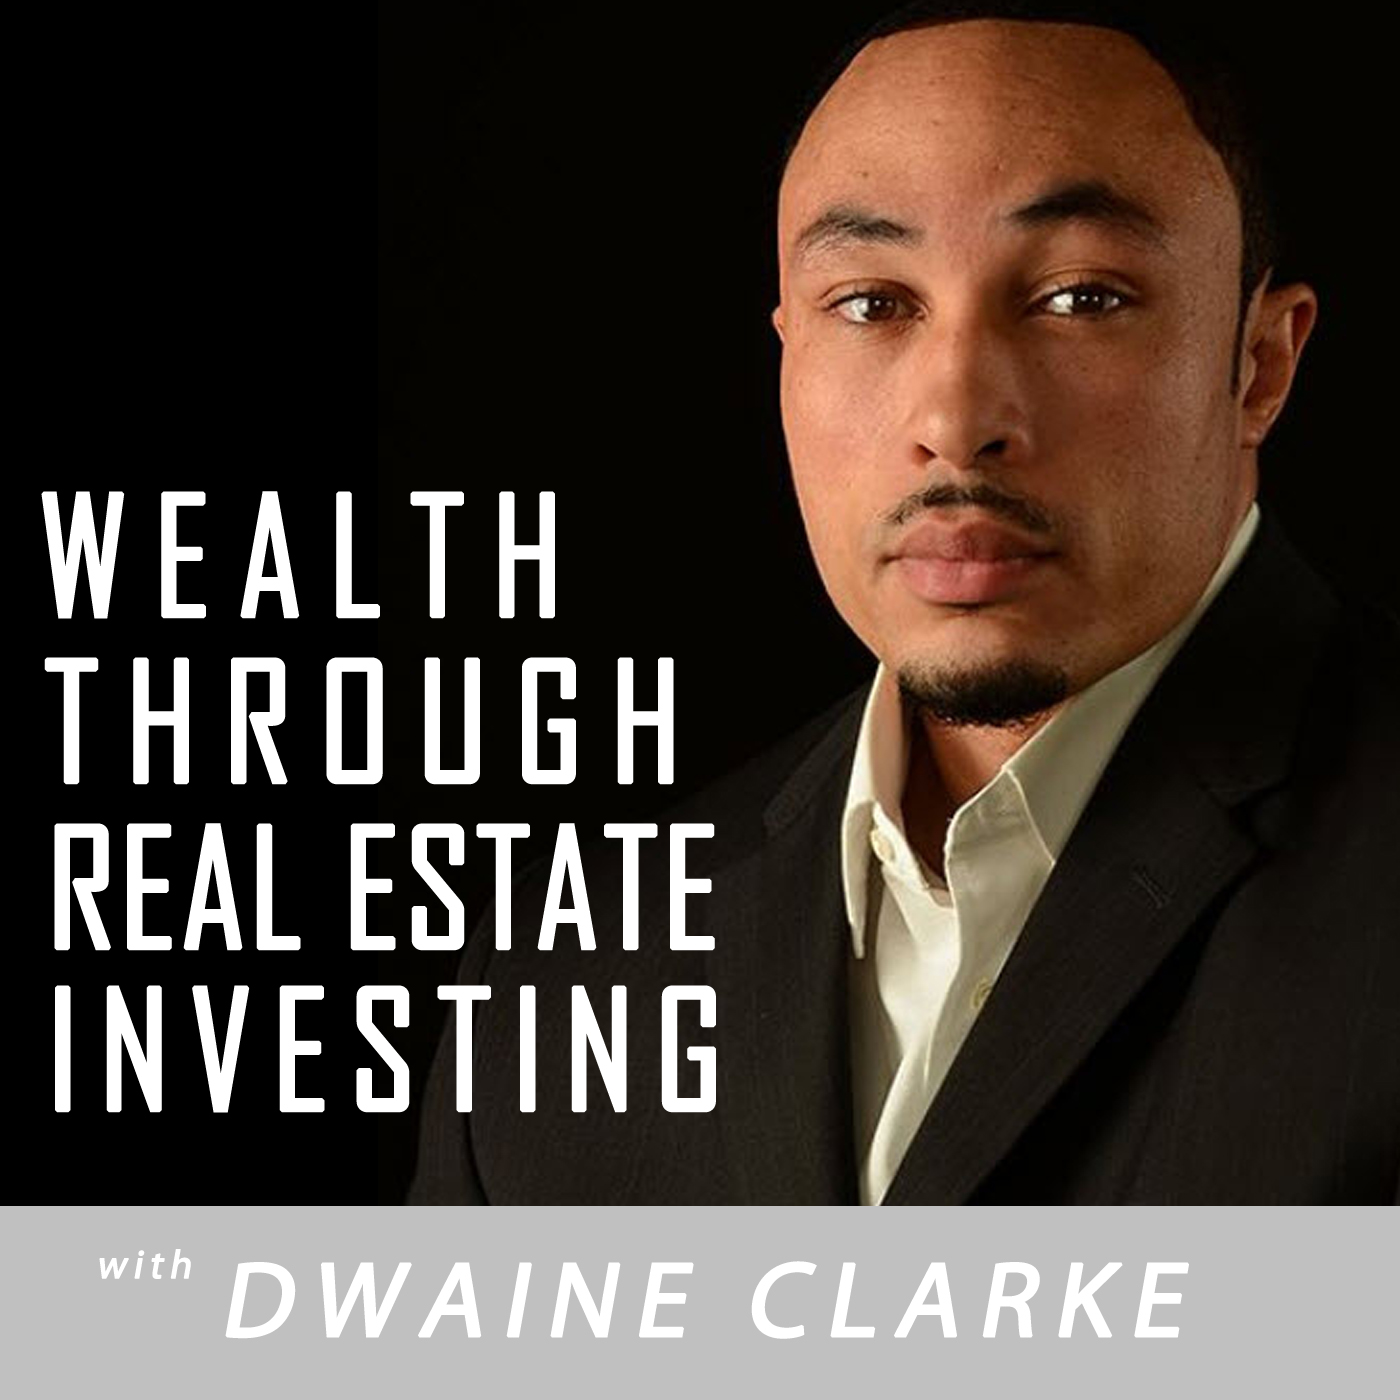 Wealth Through Real Estate Investing Show with Dwaine Clarke show art